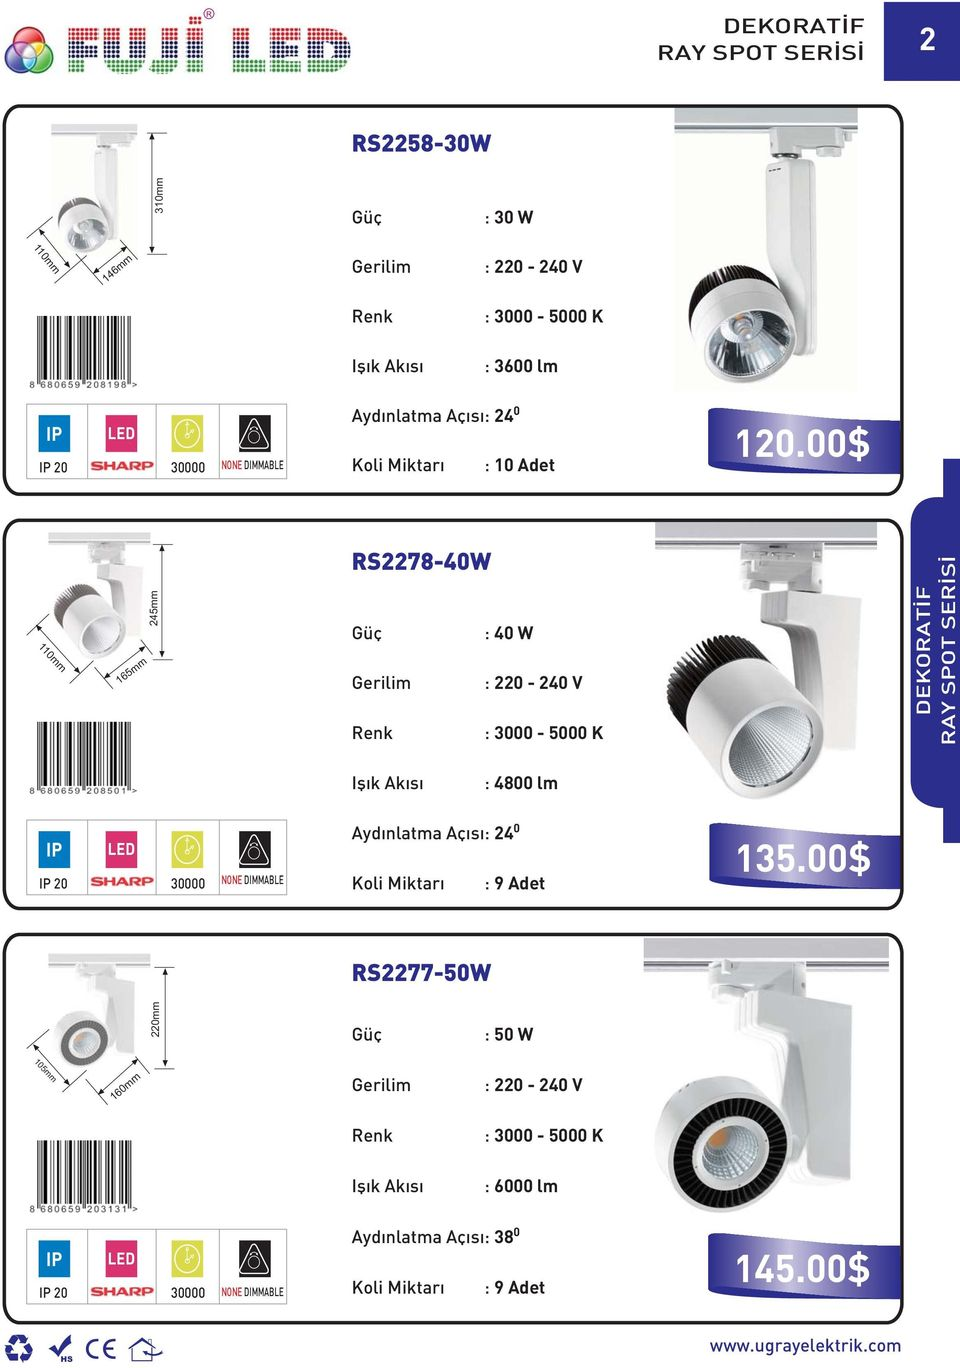 00$ 110mm 165mm 245mm S2278-40W : 40 W : 3000-5000 K DEKOATİF AY SPOT SEİSİ : 4800 lm 20 30000 NONE DIMMABLE